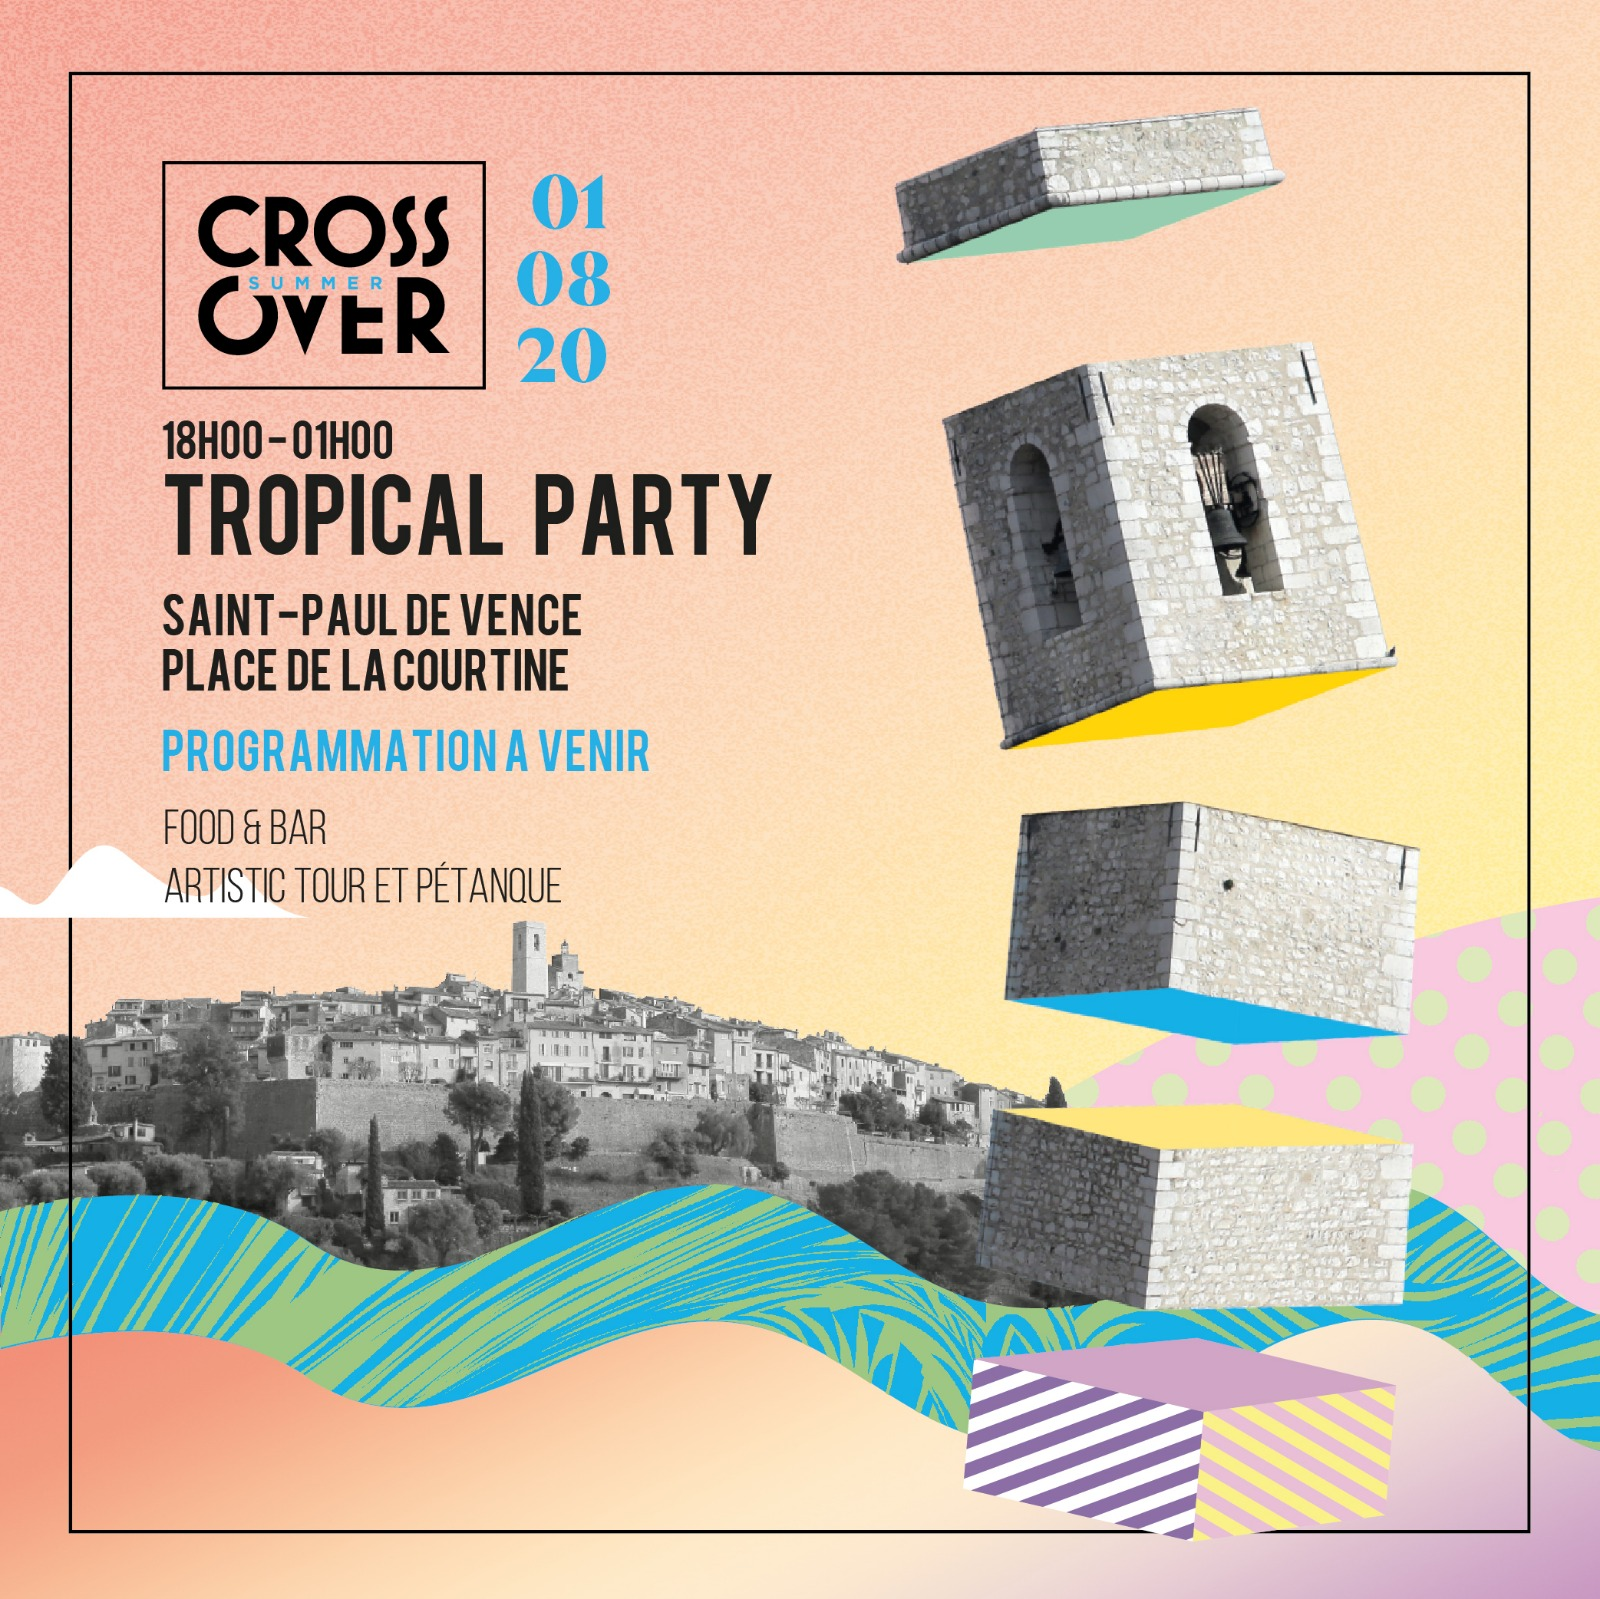 Crossover Summer · Tropical Party · Saint-Paul de Vence